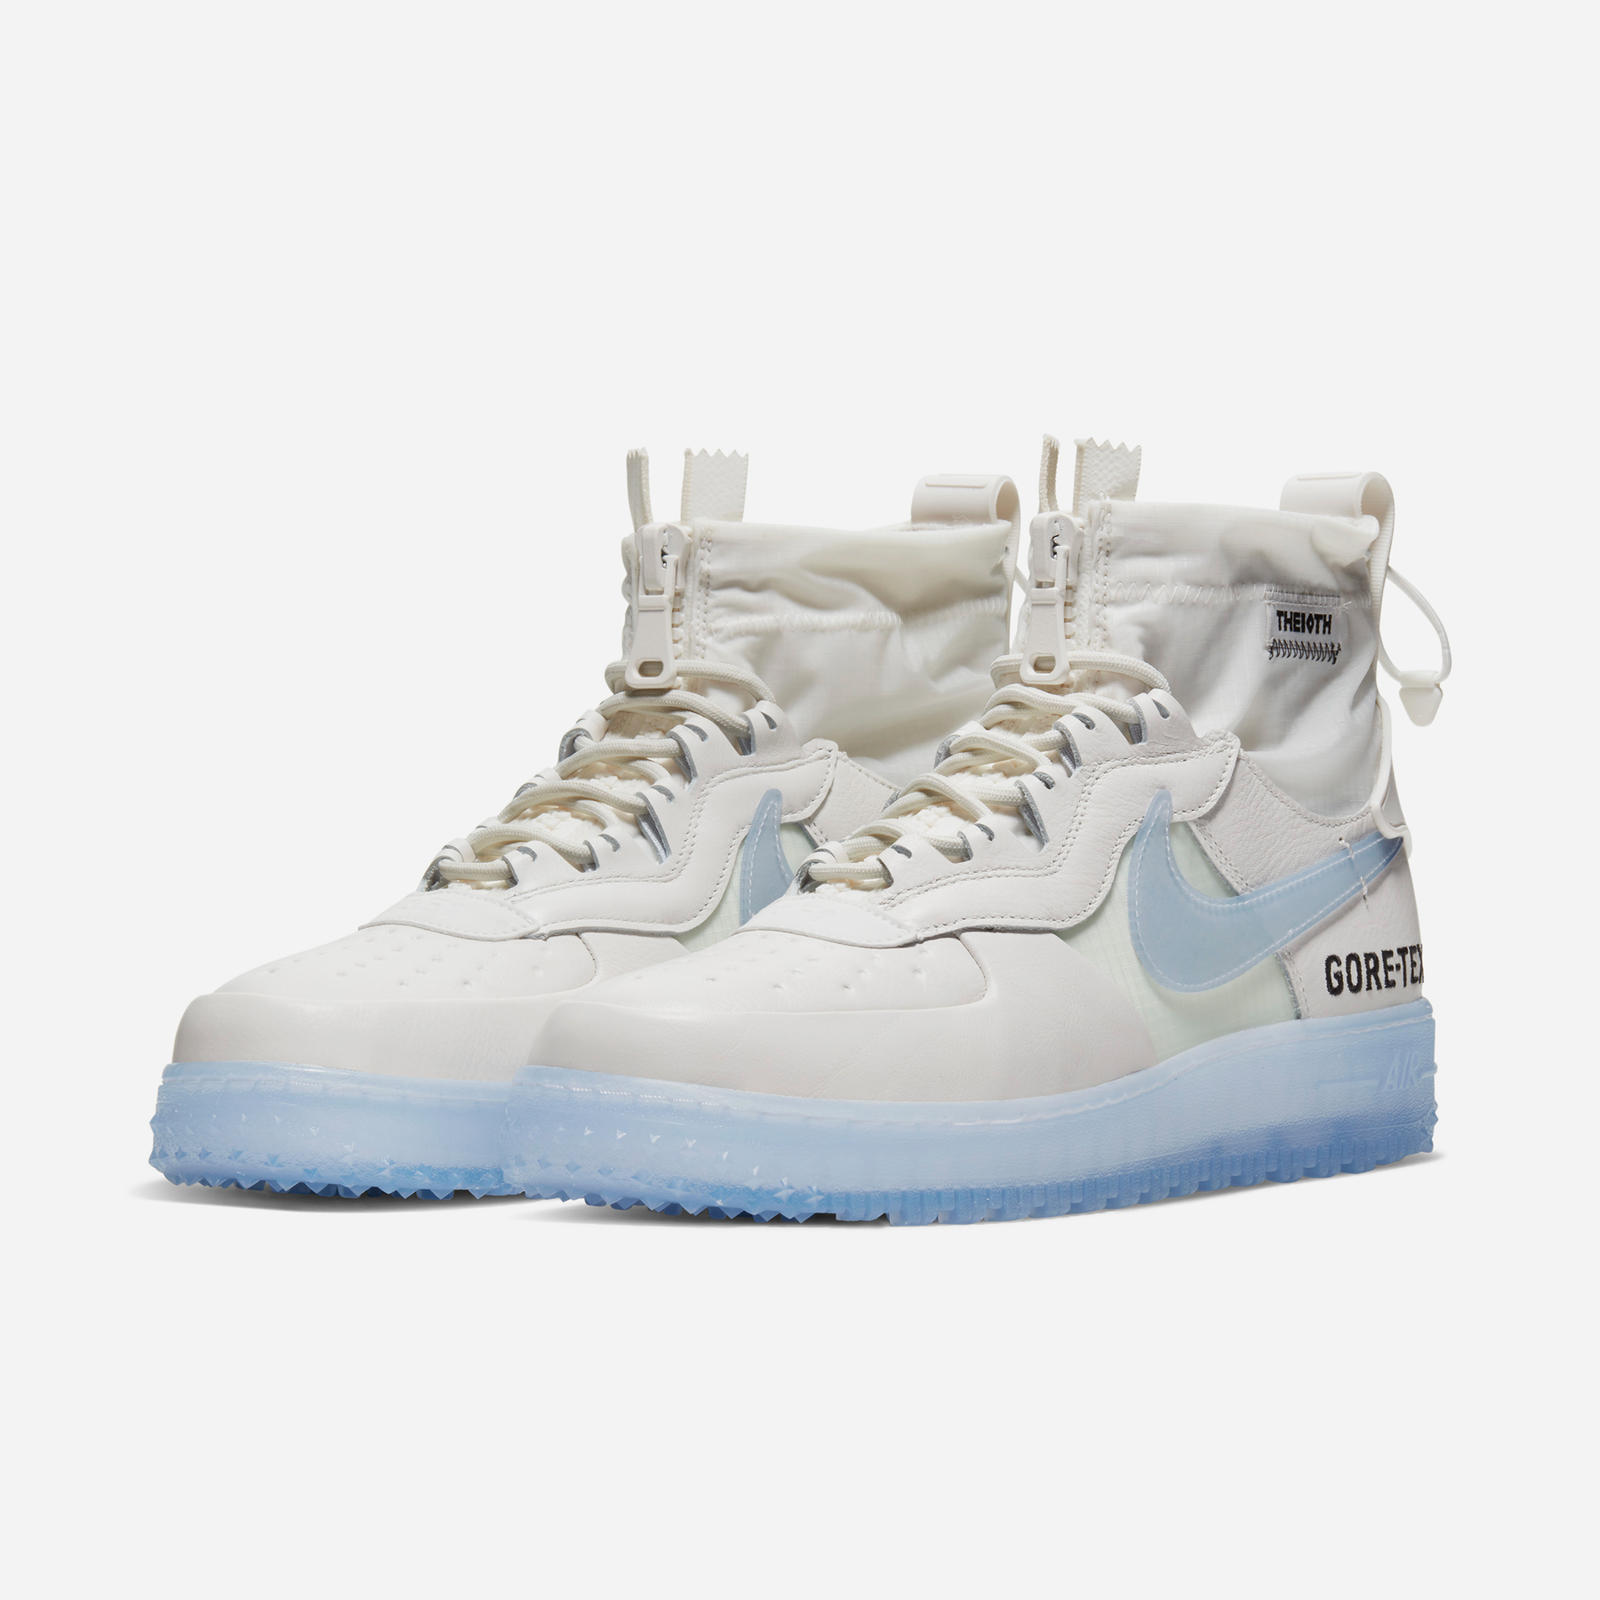 new lower prices super specials differently Air Force 1 Gore-Tex, NBA and Bones Official Images and ...